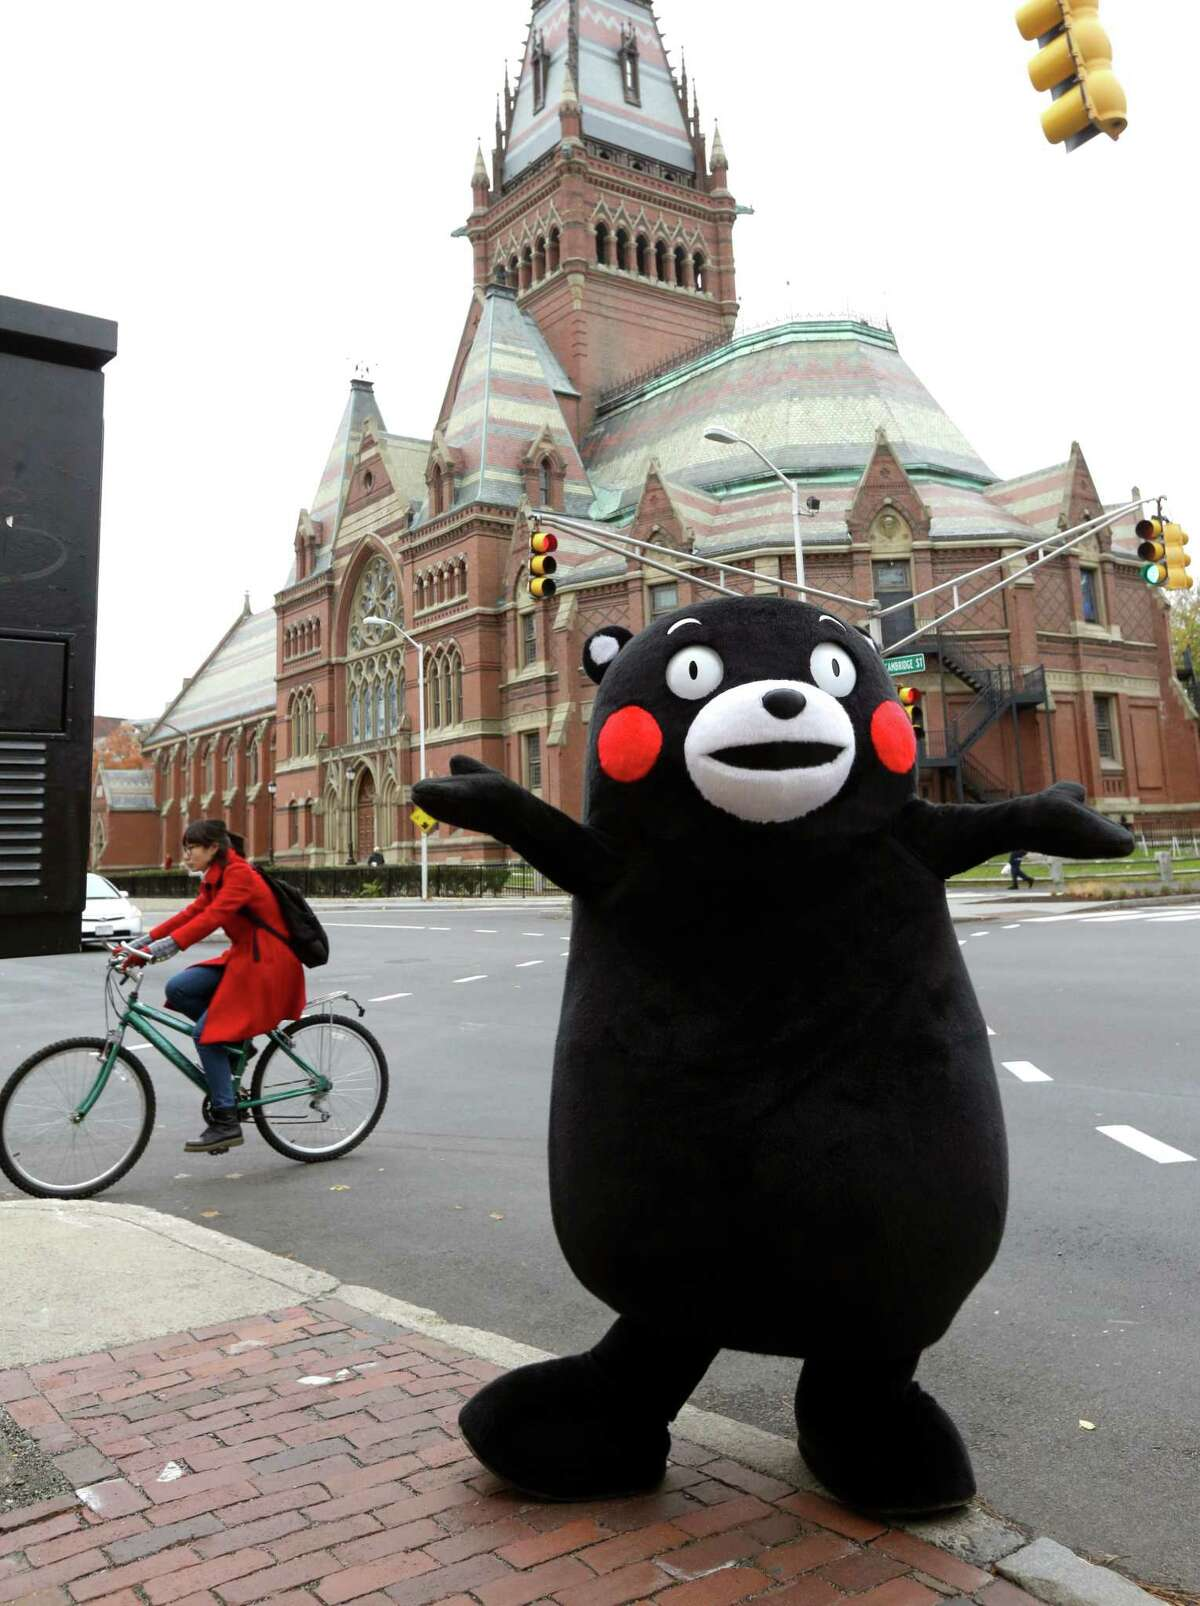 FILE - In this Nov. 12, 2013 file photo, Kumamon, a popular black bear character from Japan, dances on the street outside Harvard University in Cambridge, Mass. when the Kumamon character that originated in Japan's Kumamoto prefecture, or state, visited the university and Fenway Park in Boston on the day. Characters are not just for kids in Japan, but a part of business and social life. Goofy black bear Kumamon is perhaps the most successful of the mushrooming new characters that seek to promote a locality in Japan.